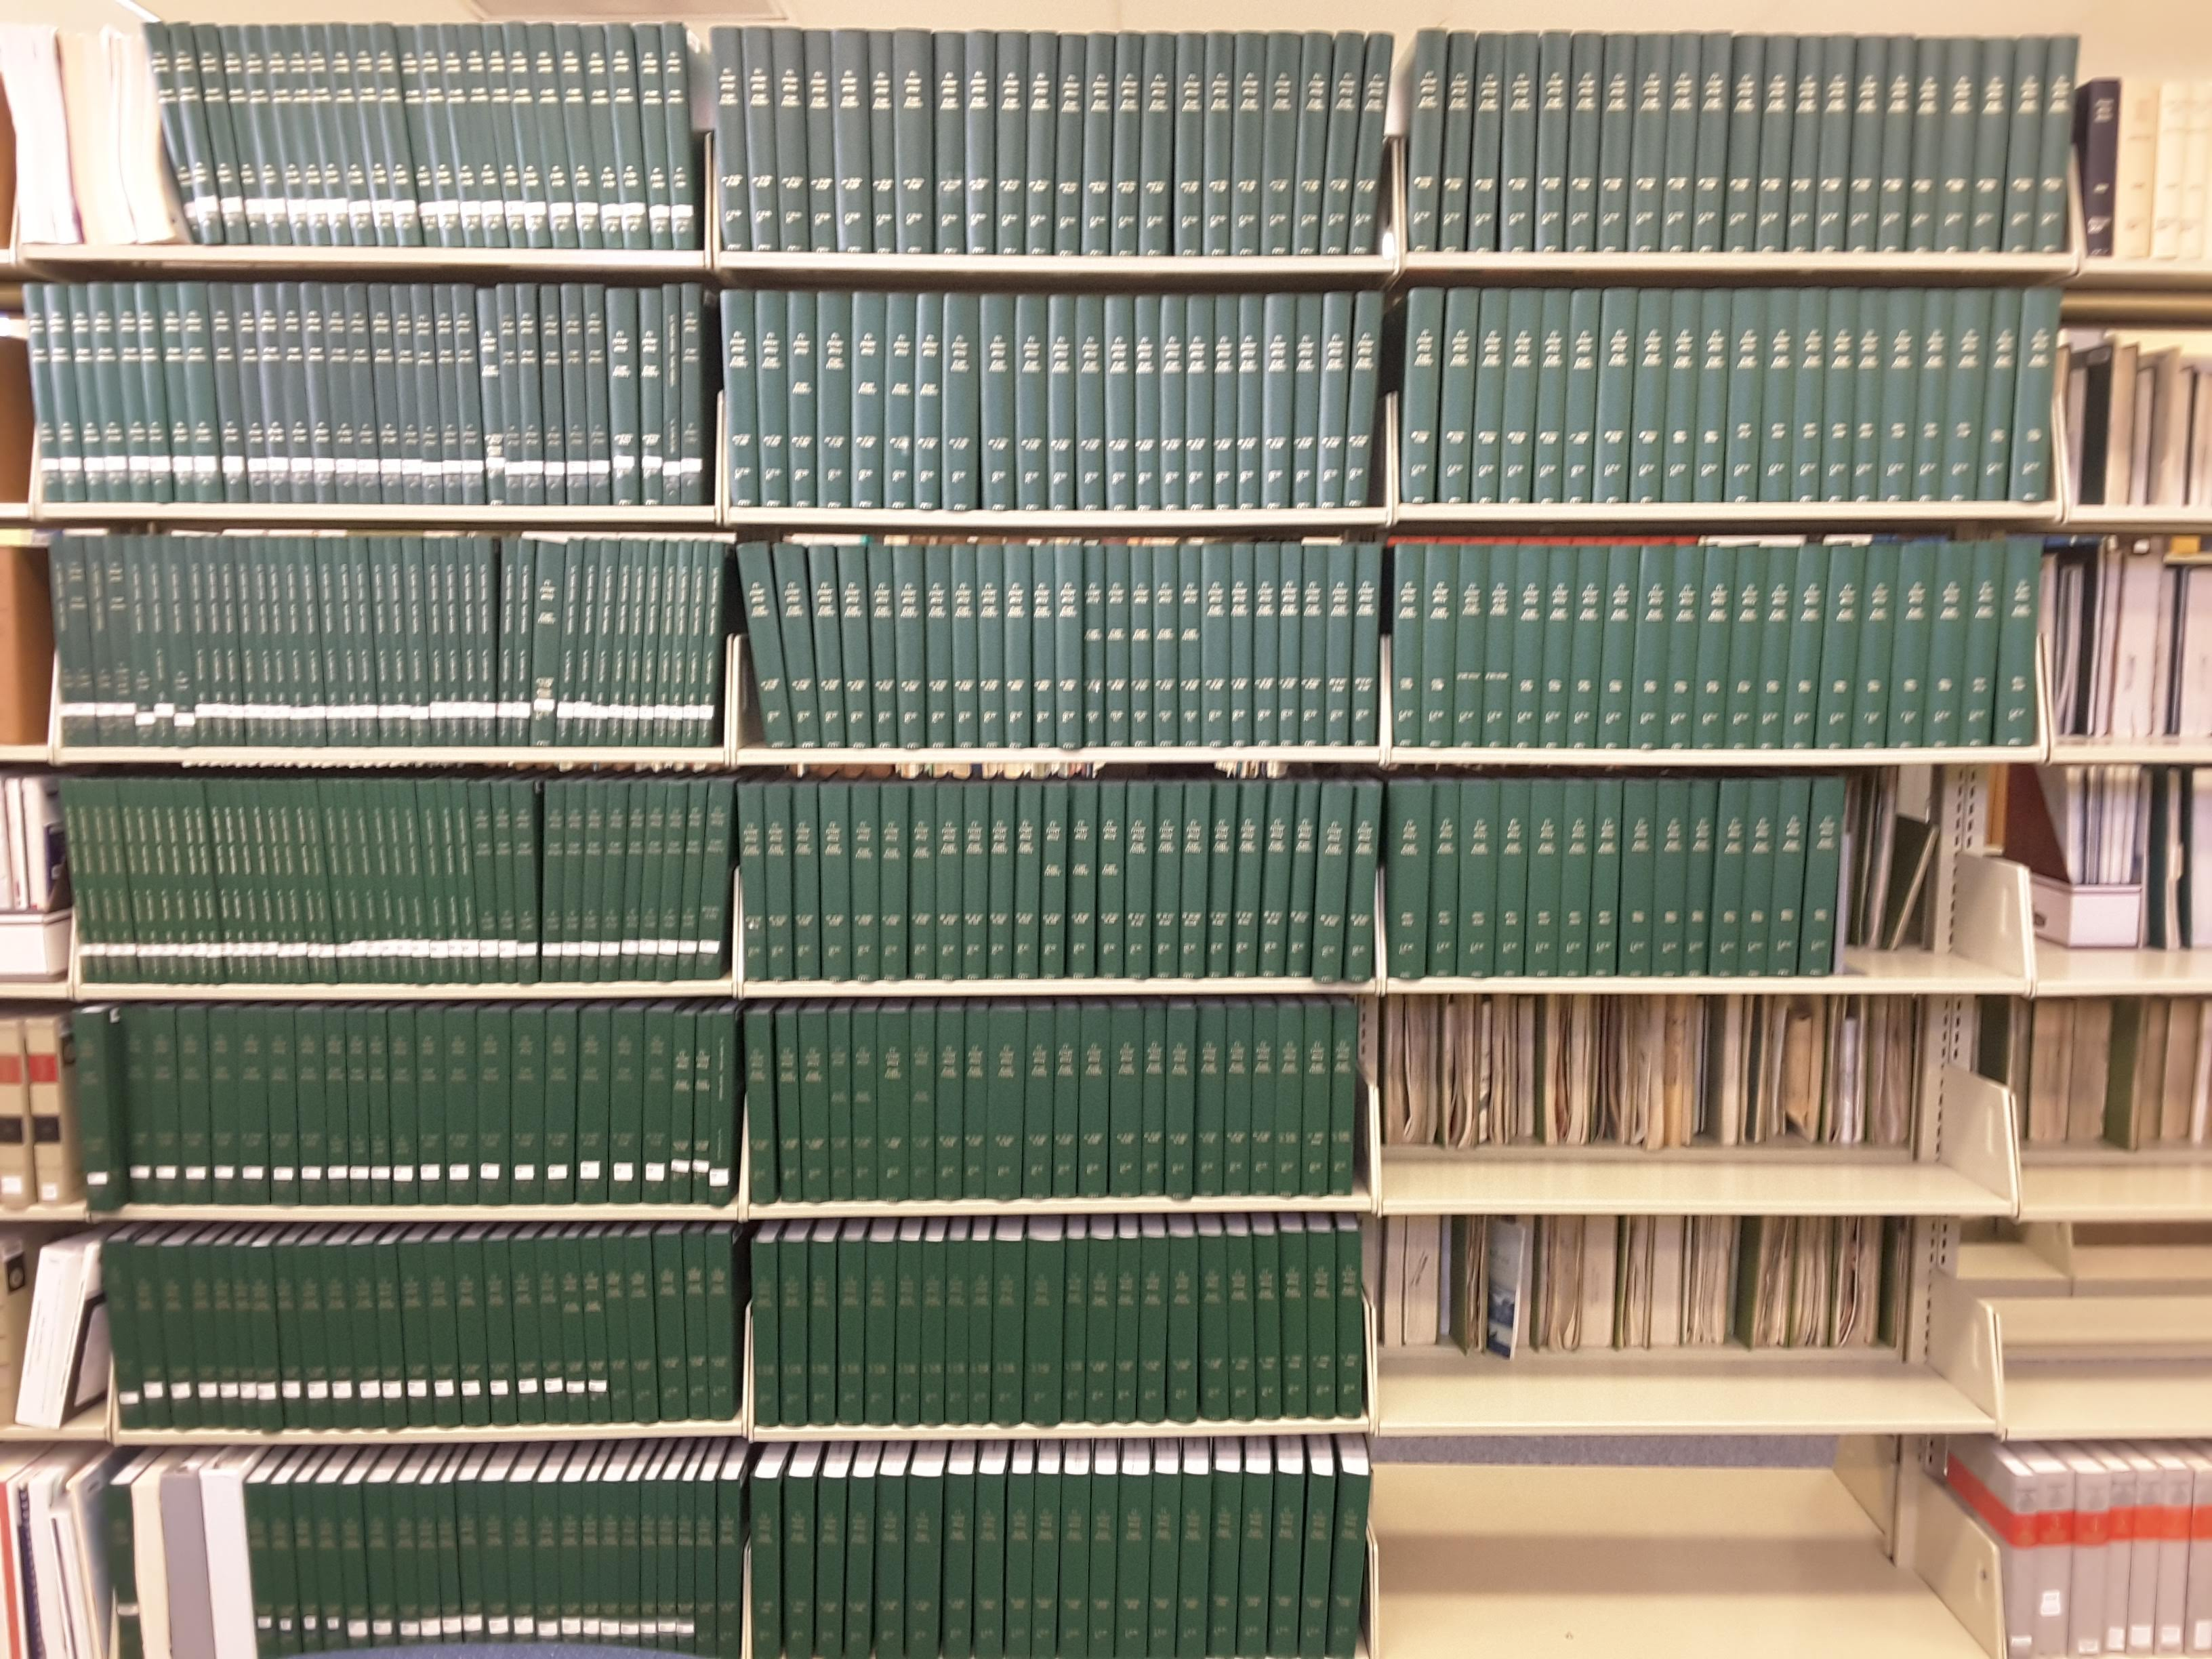 Plant patent archive at NMSU